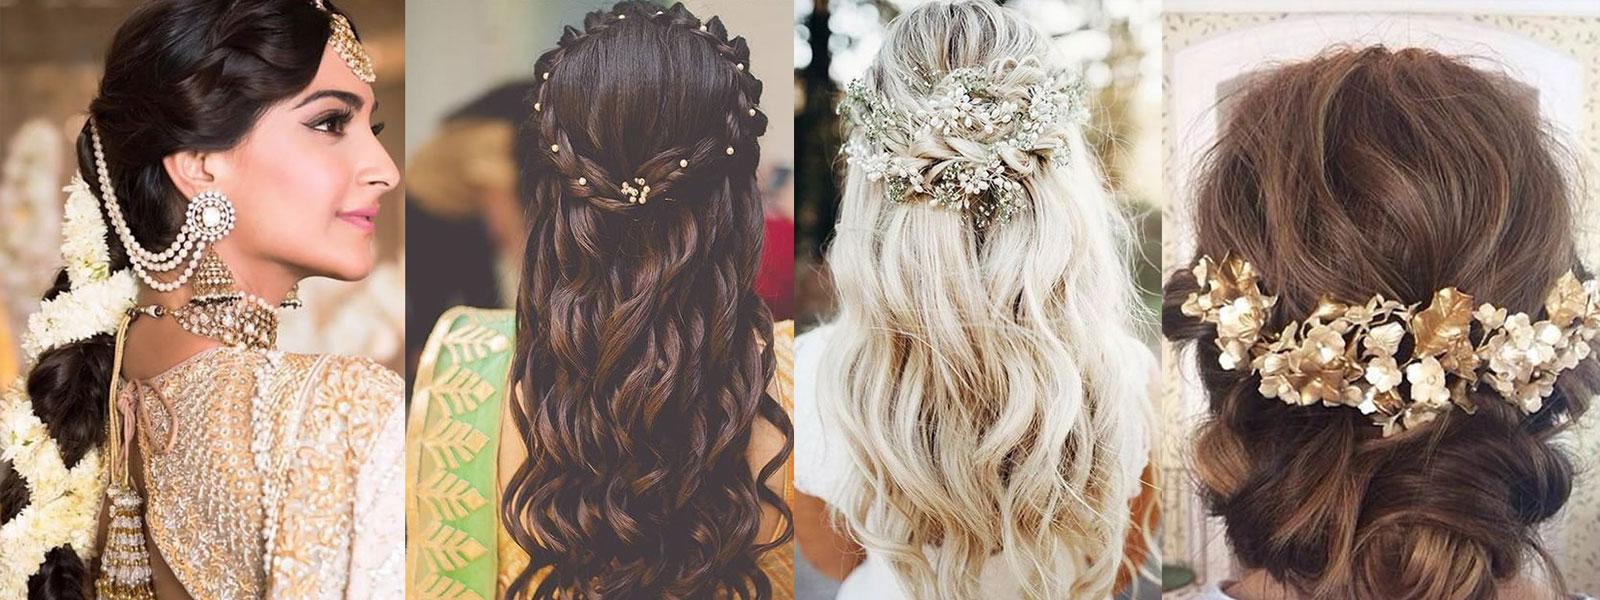 Four different wedding hair styles